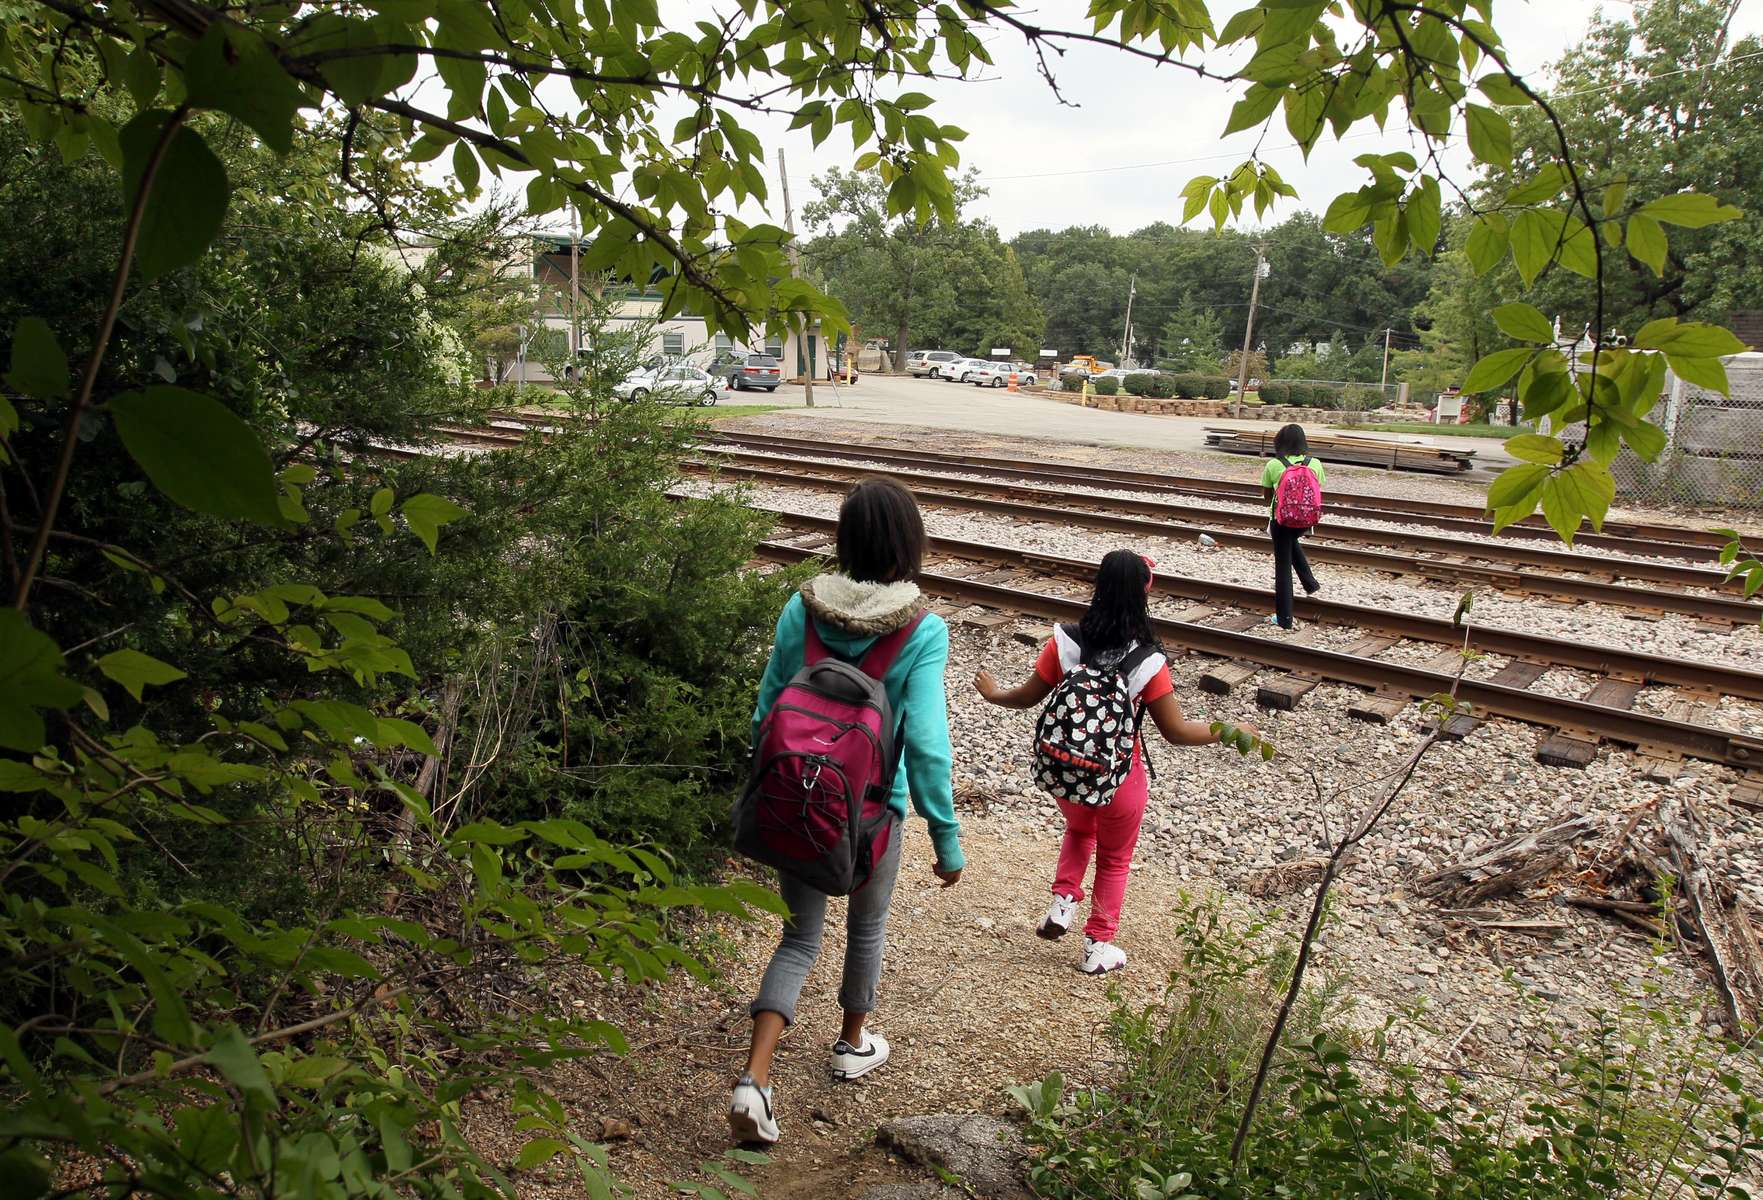 Middle School students from Nipher Middle School in Kirkwood walk a well worn path that leads them across a set of railroad tracks on their way home after school on Friday, Sept. 14, 2012.  Everyday more than a dozen students take the same path across the tracks as they walk both to and from school. Photo By David Carson, dcarson@post-dispatch.com